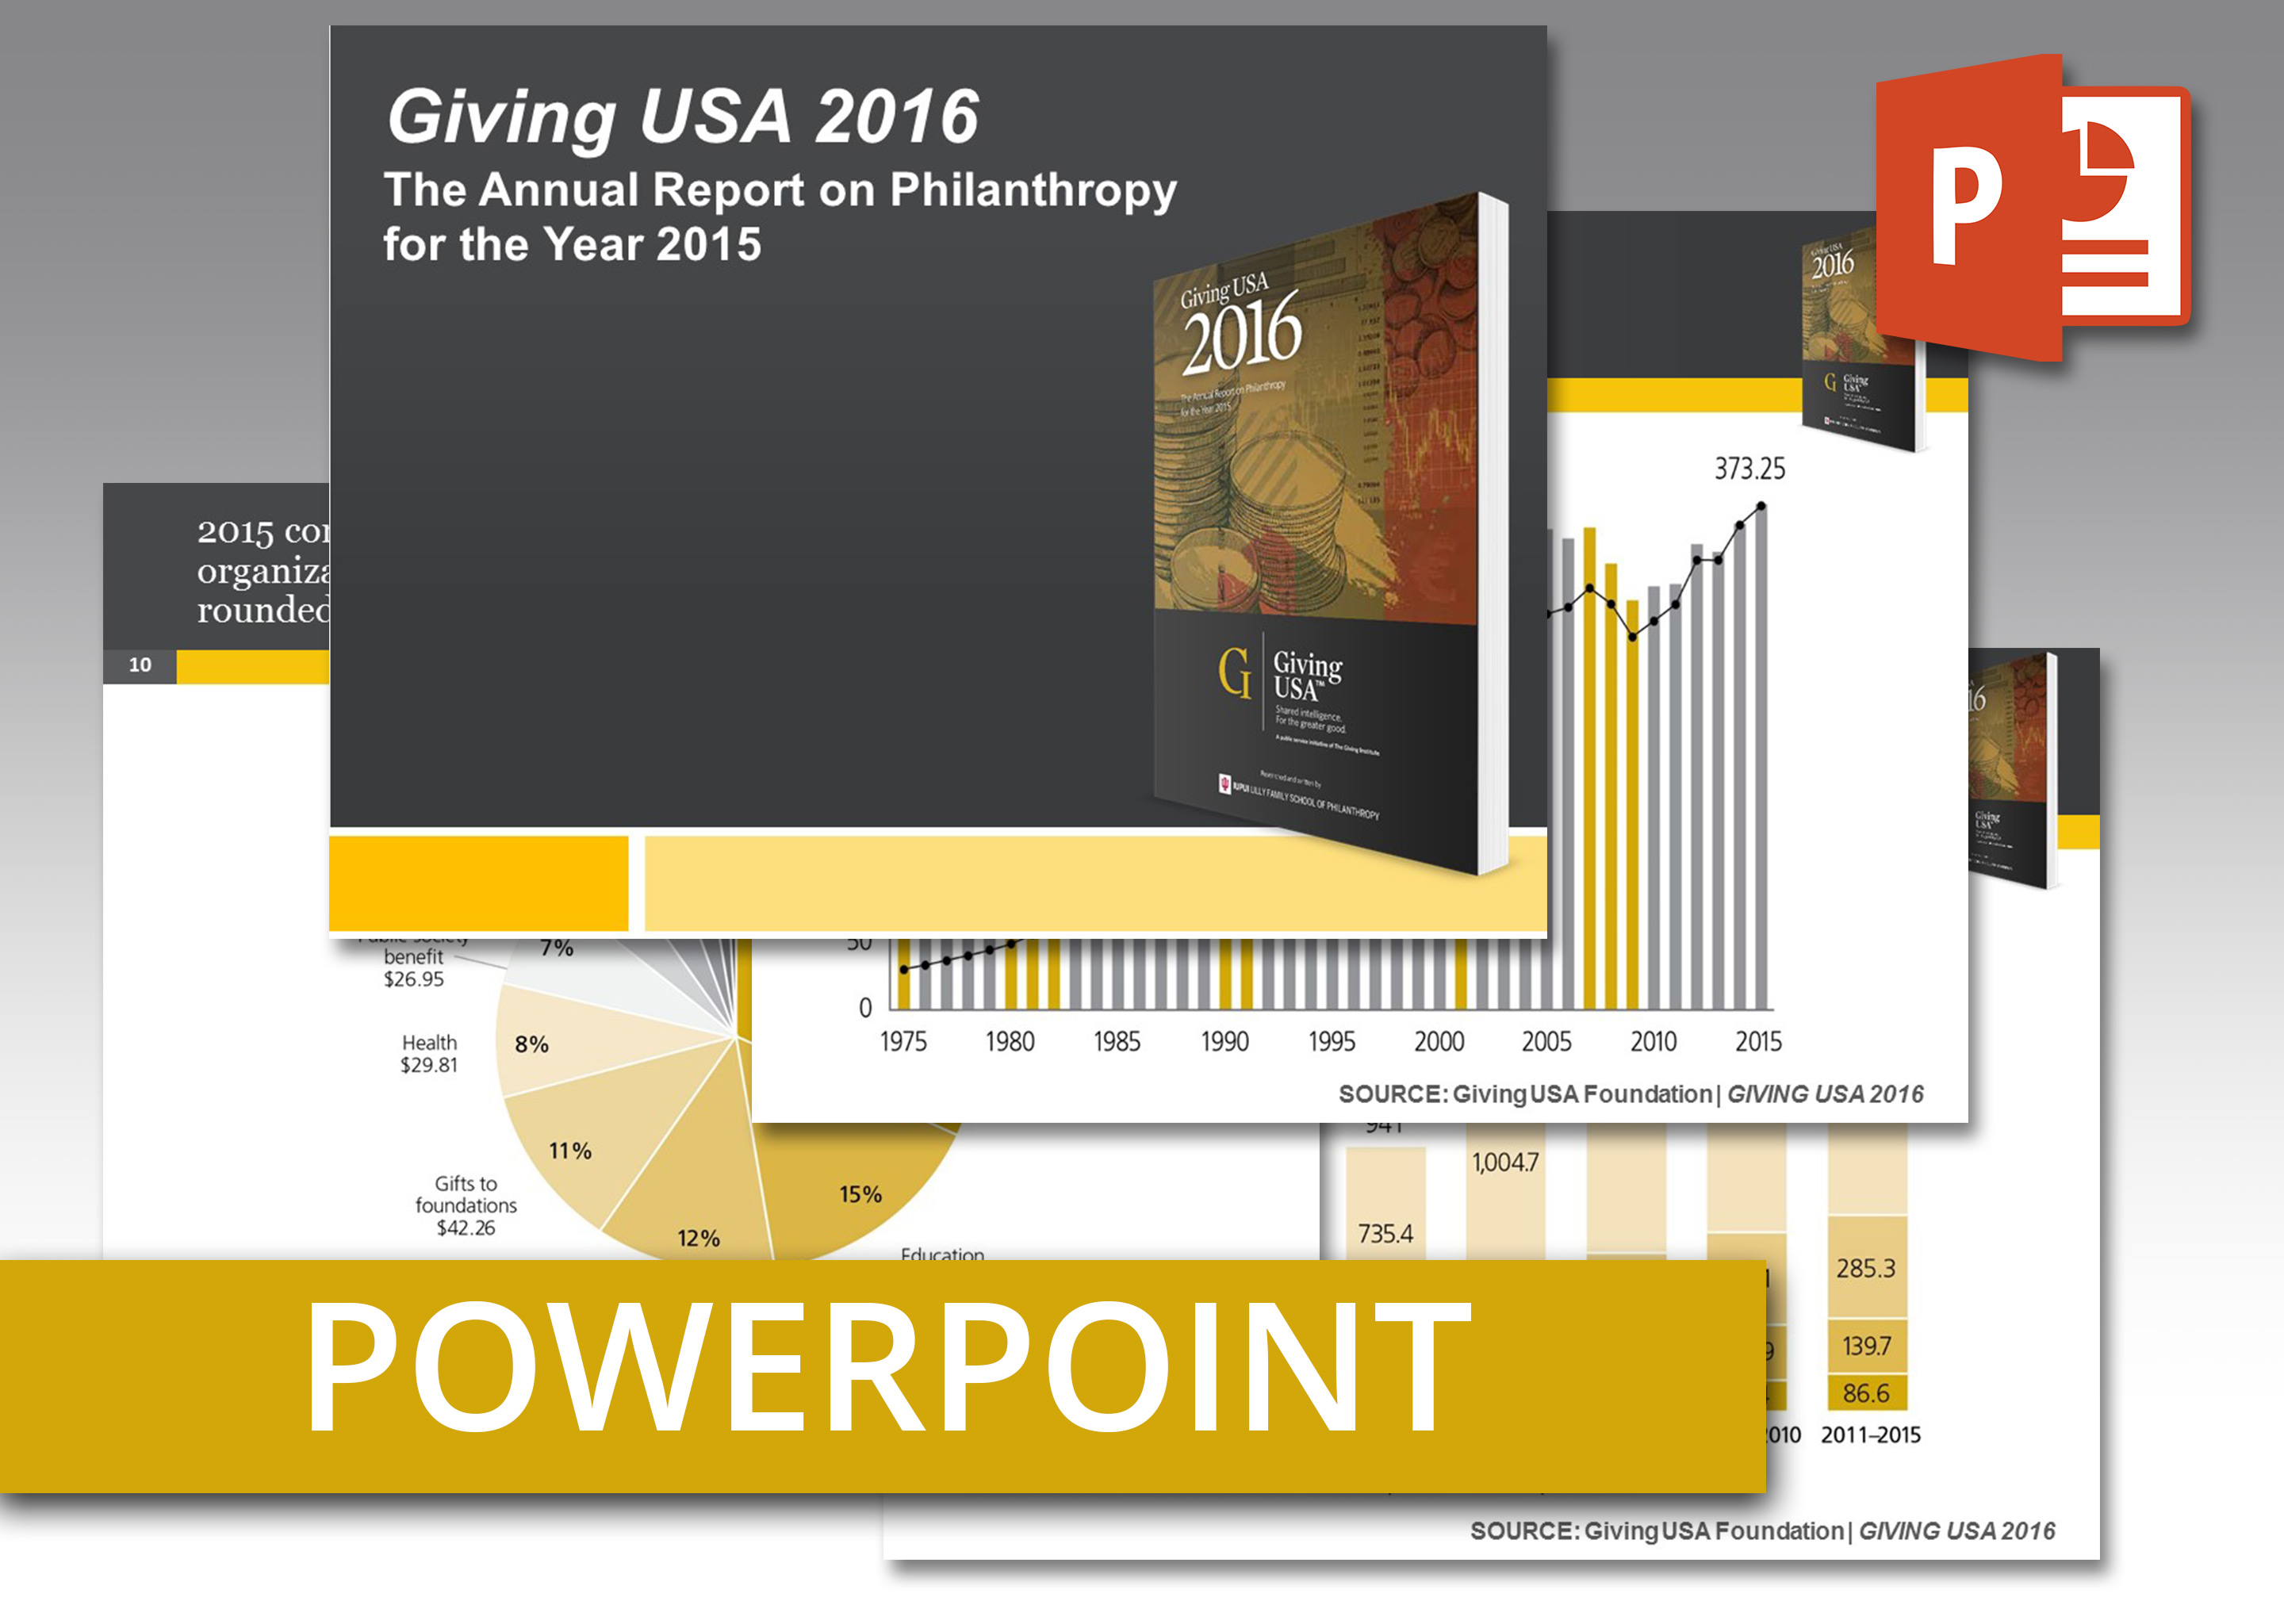 Coolmathgamesus  Prepossessing Giving Usa  Powerpoint An Easytouse Presentation Of Report  With Licious Giving Usa  Powerpoint An Easytouse Presentation Of Report Findings Including Talking Points With Delectable Ancient Egypt Powerpoint Also Clipart Powerpoint In Addition Slide Size Powerpoint And Citing A Powerpoint Mla As Well As Powerpoint Lesson Plans Additionally Embed Youtube Powerpoint From Givingusaorg With Coolmathgamesus  Licious Giving Usa  Powerpoint An Easytouse Presentation Of Report  With Delectable Giving Usa  Powerpoint An Easytouse Presentation Of Report Findings Including Talking Points And Prepossessing Ancient Egypt Powerpoint Also Clipart Powerpoint In Addition Slide Size Powerpoint From Givingusaorg